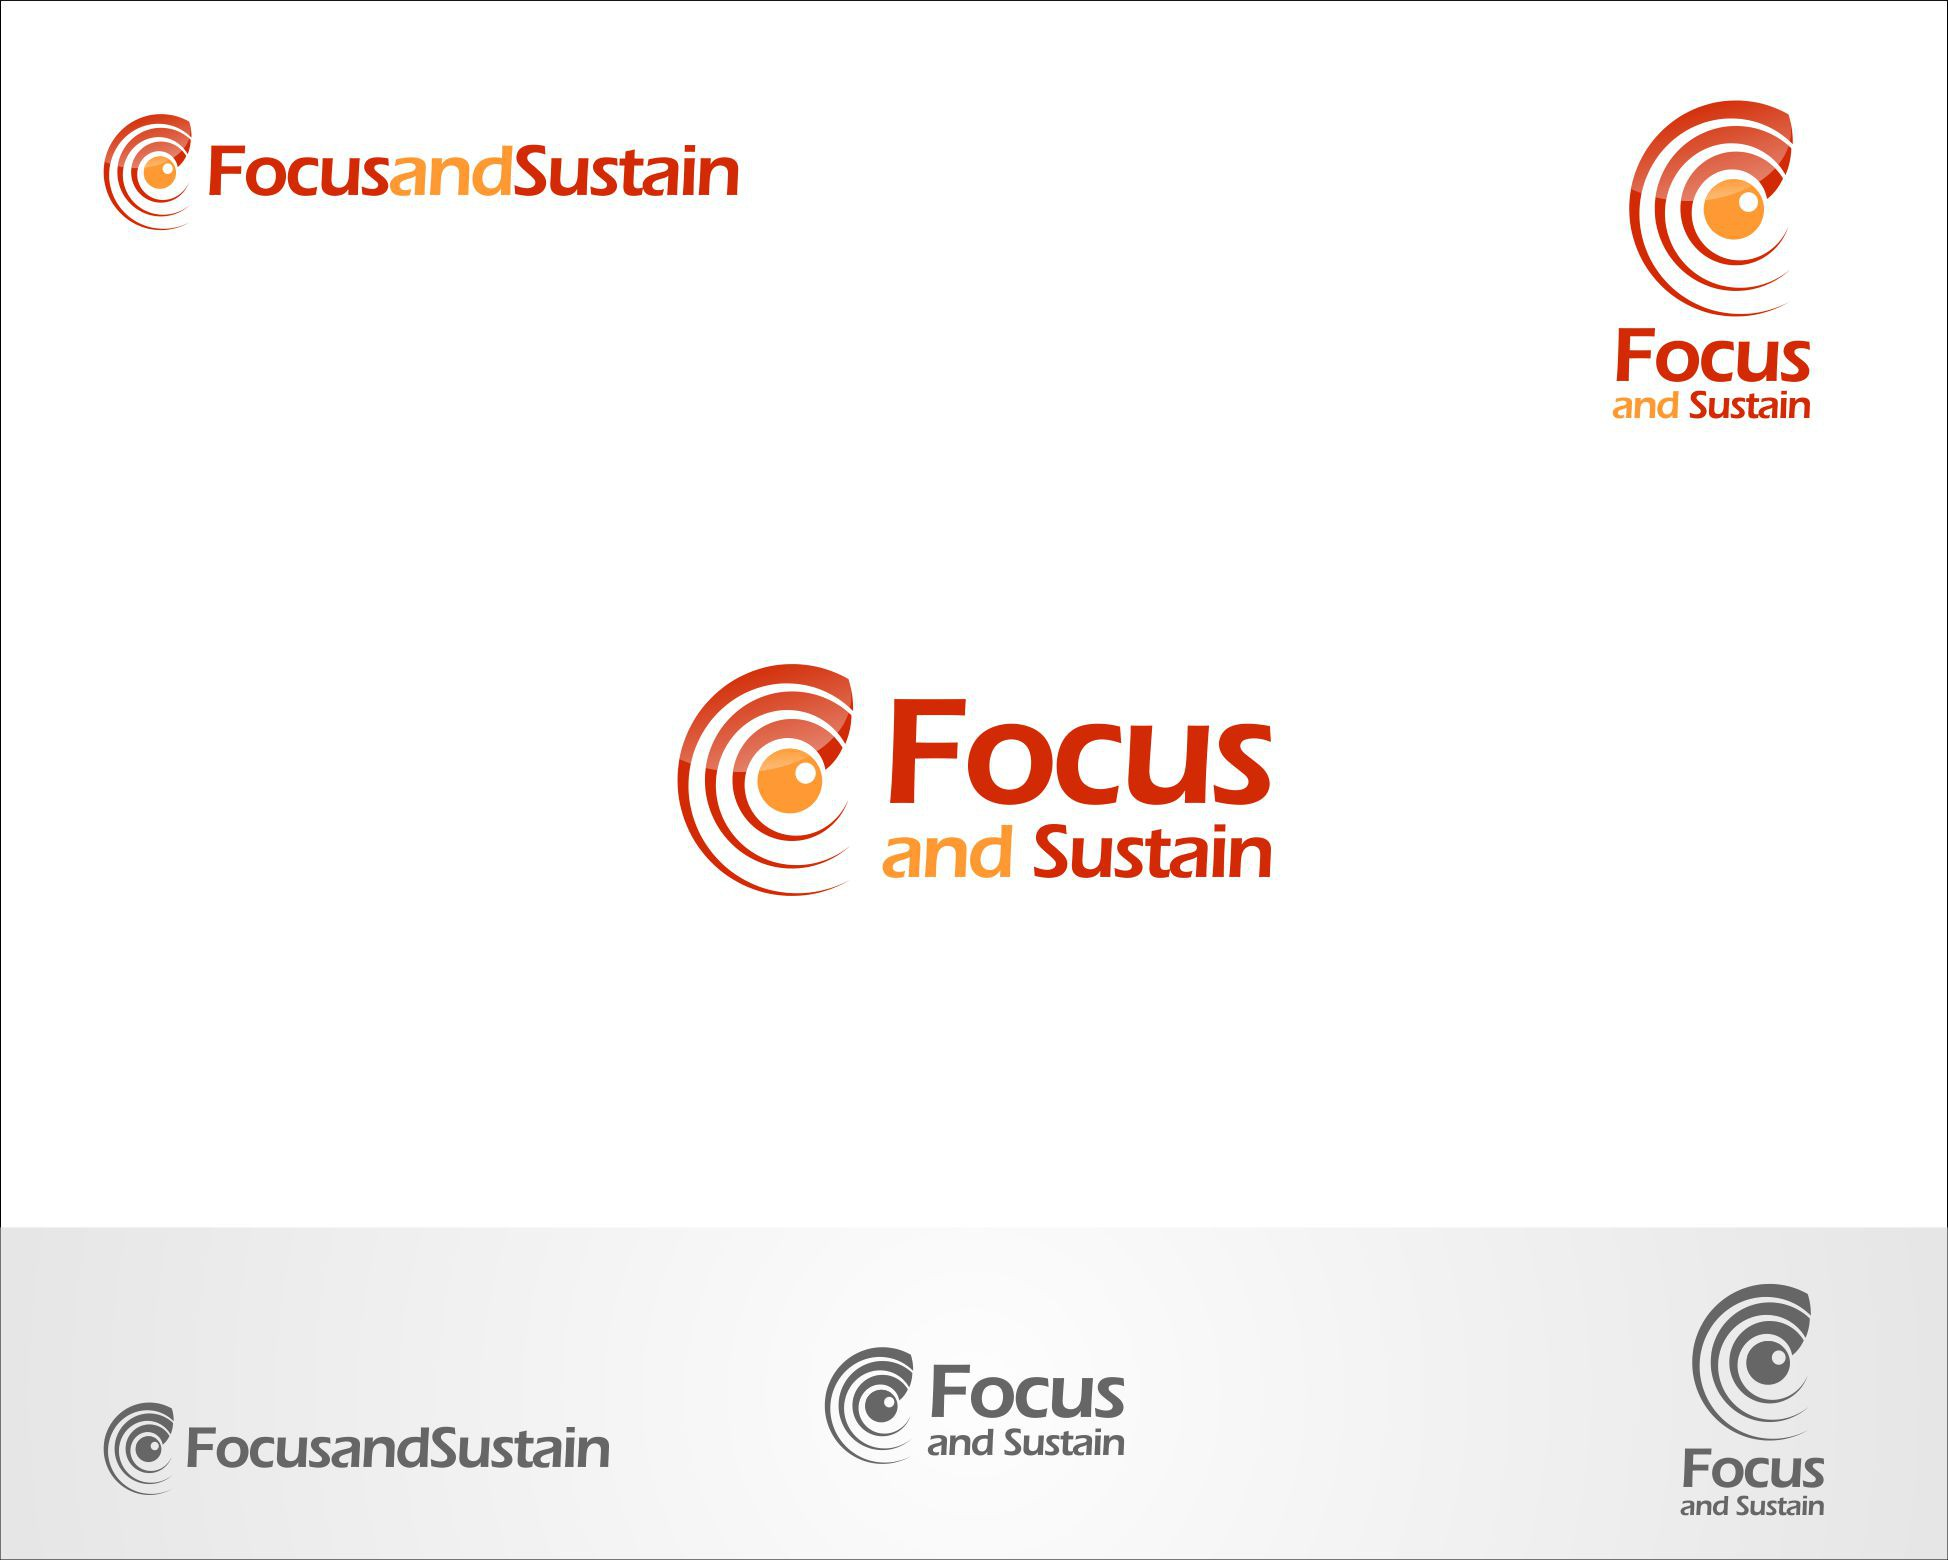 Focus and Sustain needs a new logo